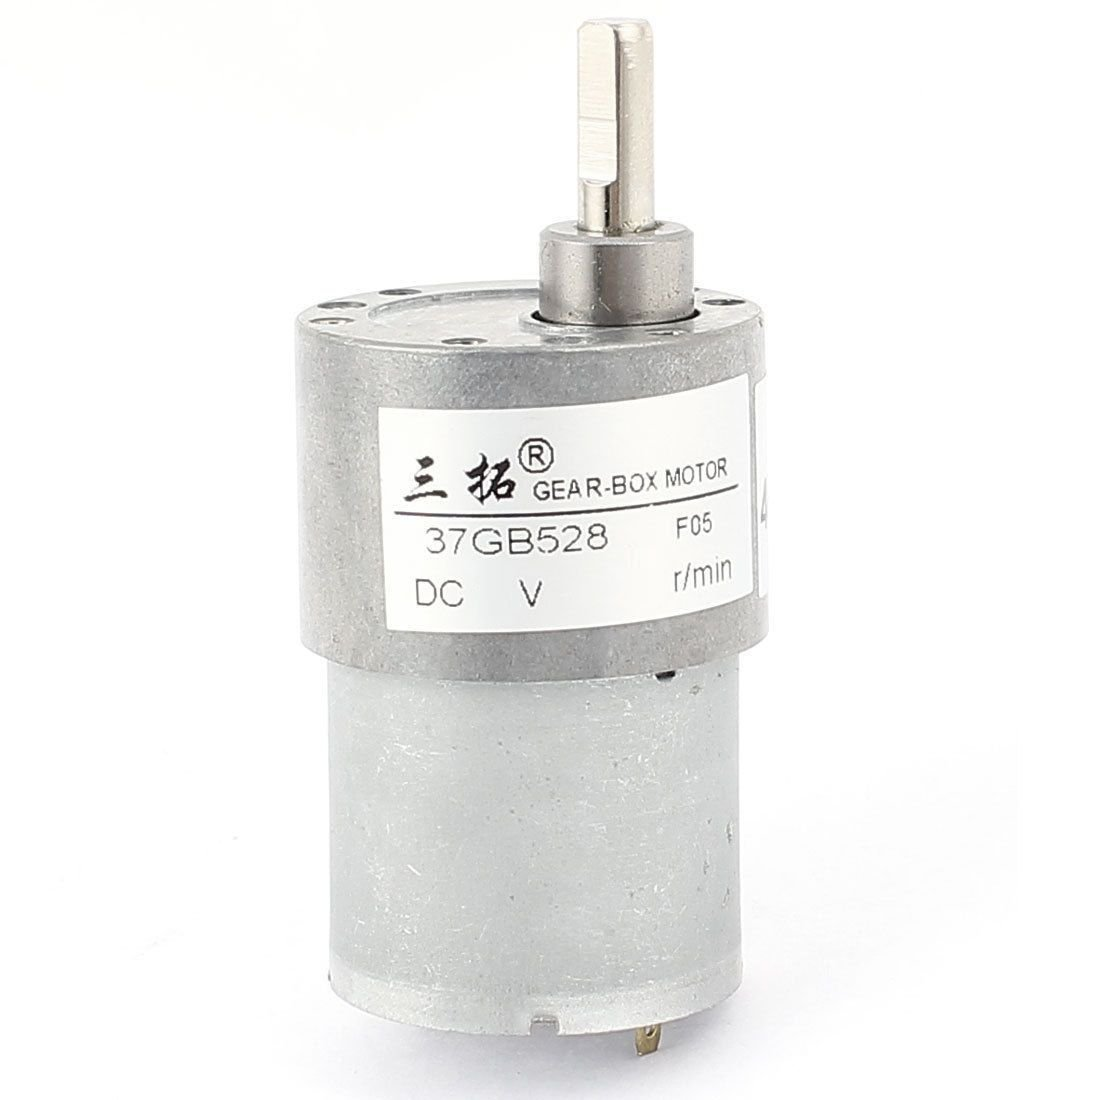 DC 12V 16RPM 0.2A 4.5KG.cm High Torque DC Gear Box Reducer Variable Speed Motor